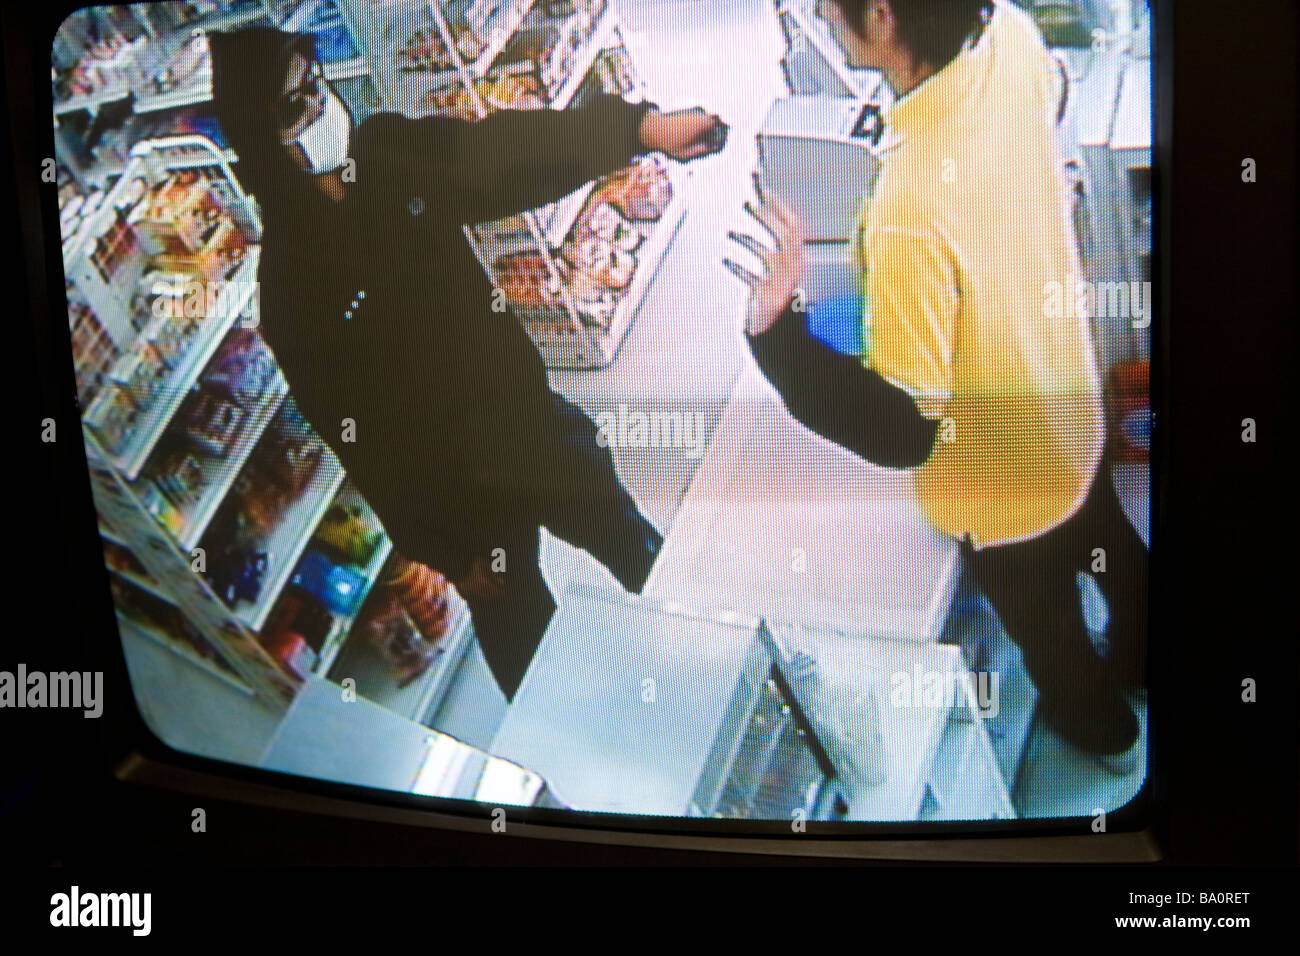 Image of security camera at convenience store - Stock Image